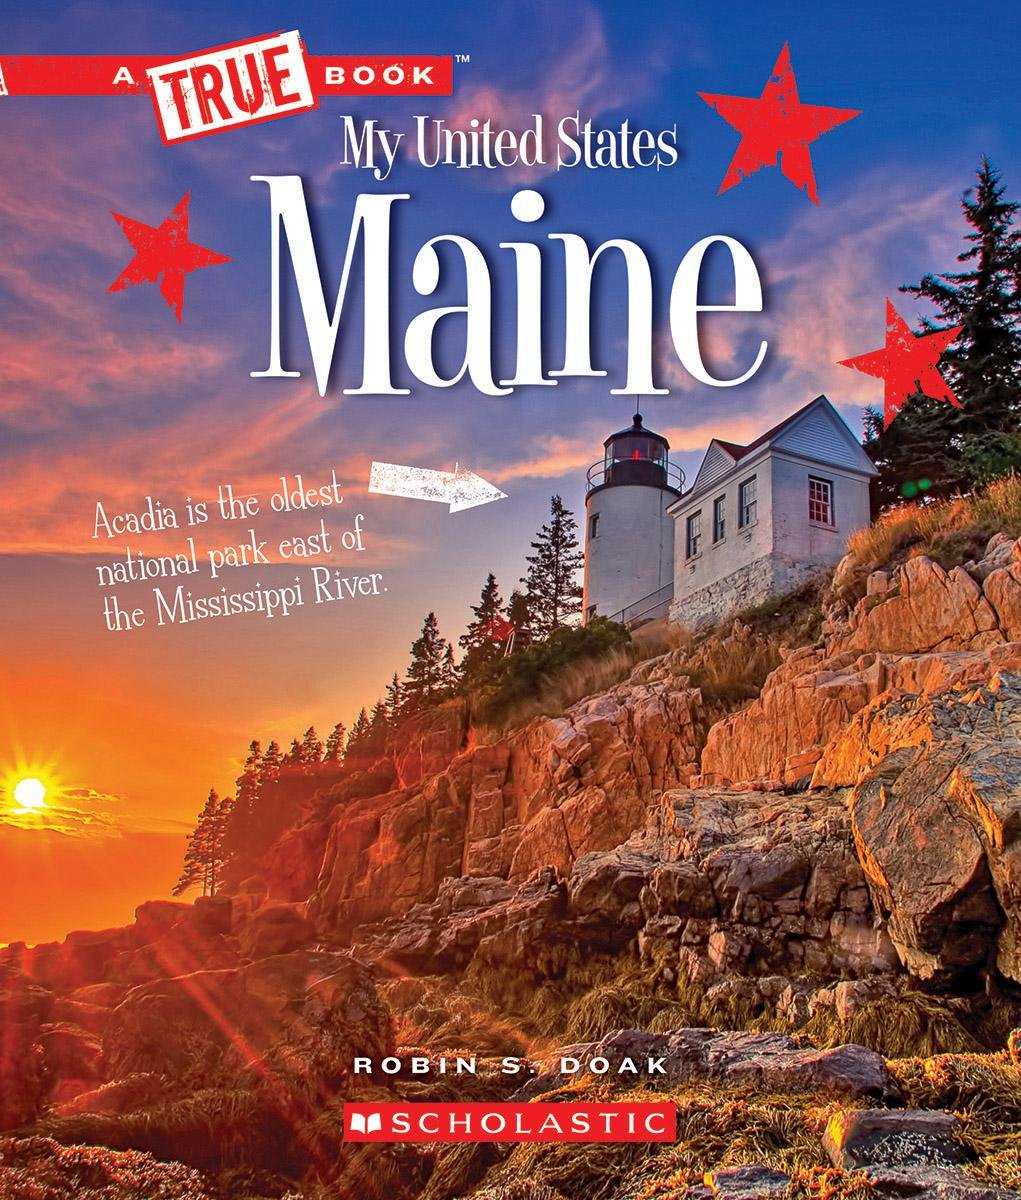 Maine (True Book My United States)